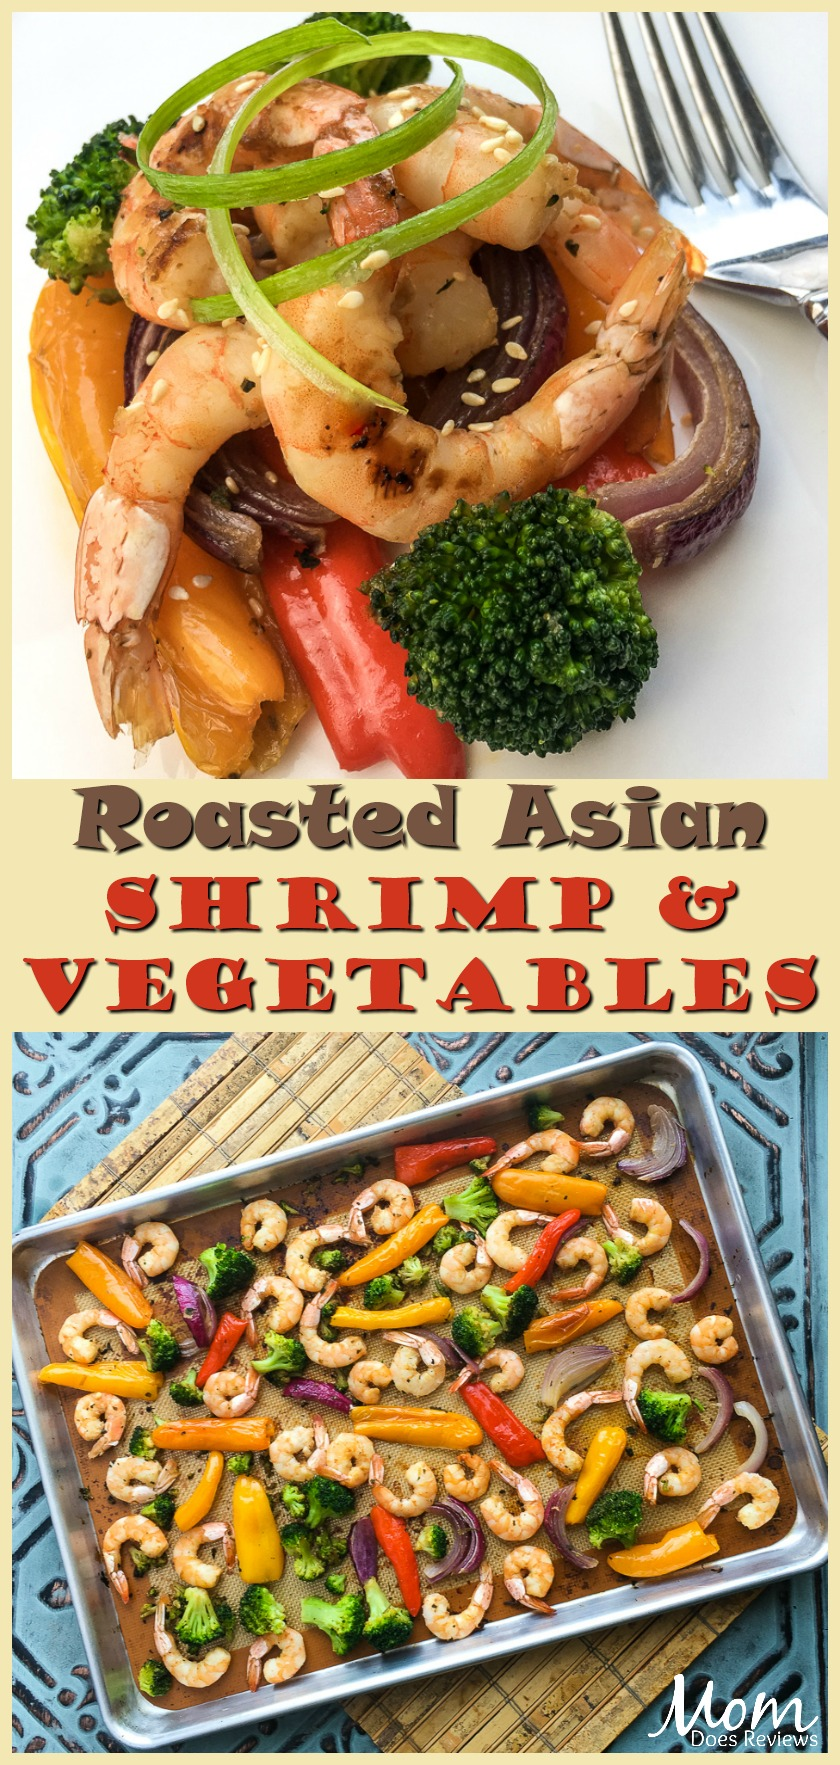 Roasted Asian Shrimp & Vegetables- Sheet Pan #Recipe #food #easyrecipes #sheetpan #shrimp #seafood #foodie